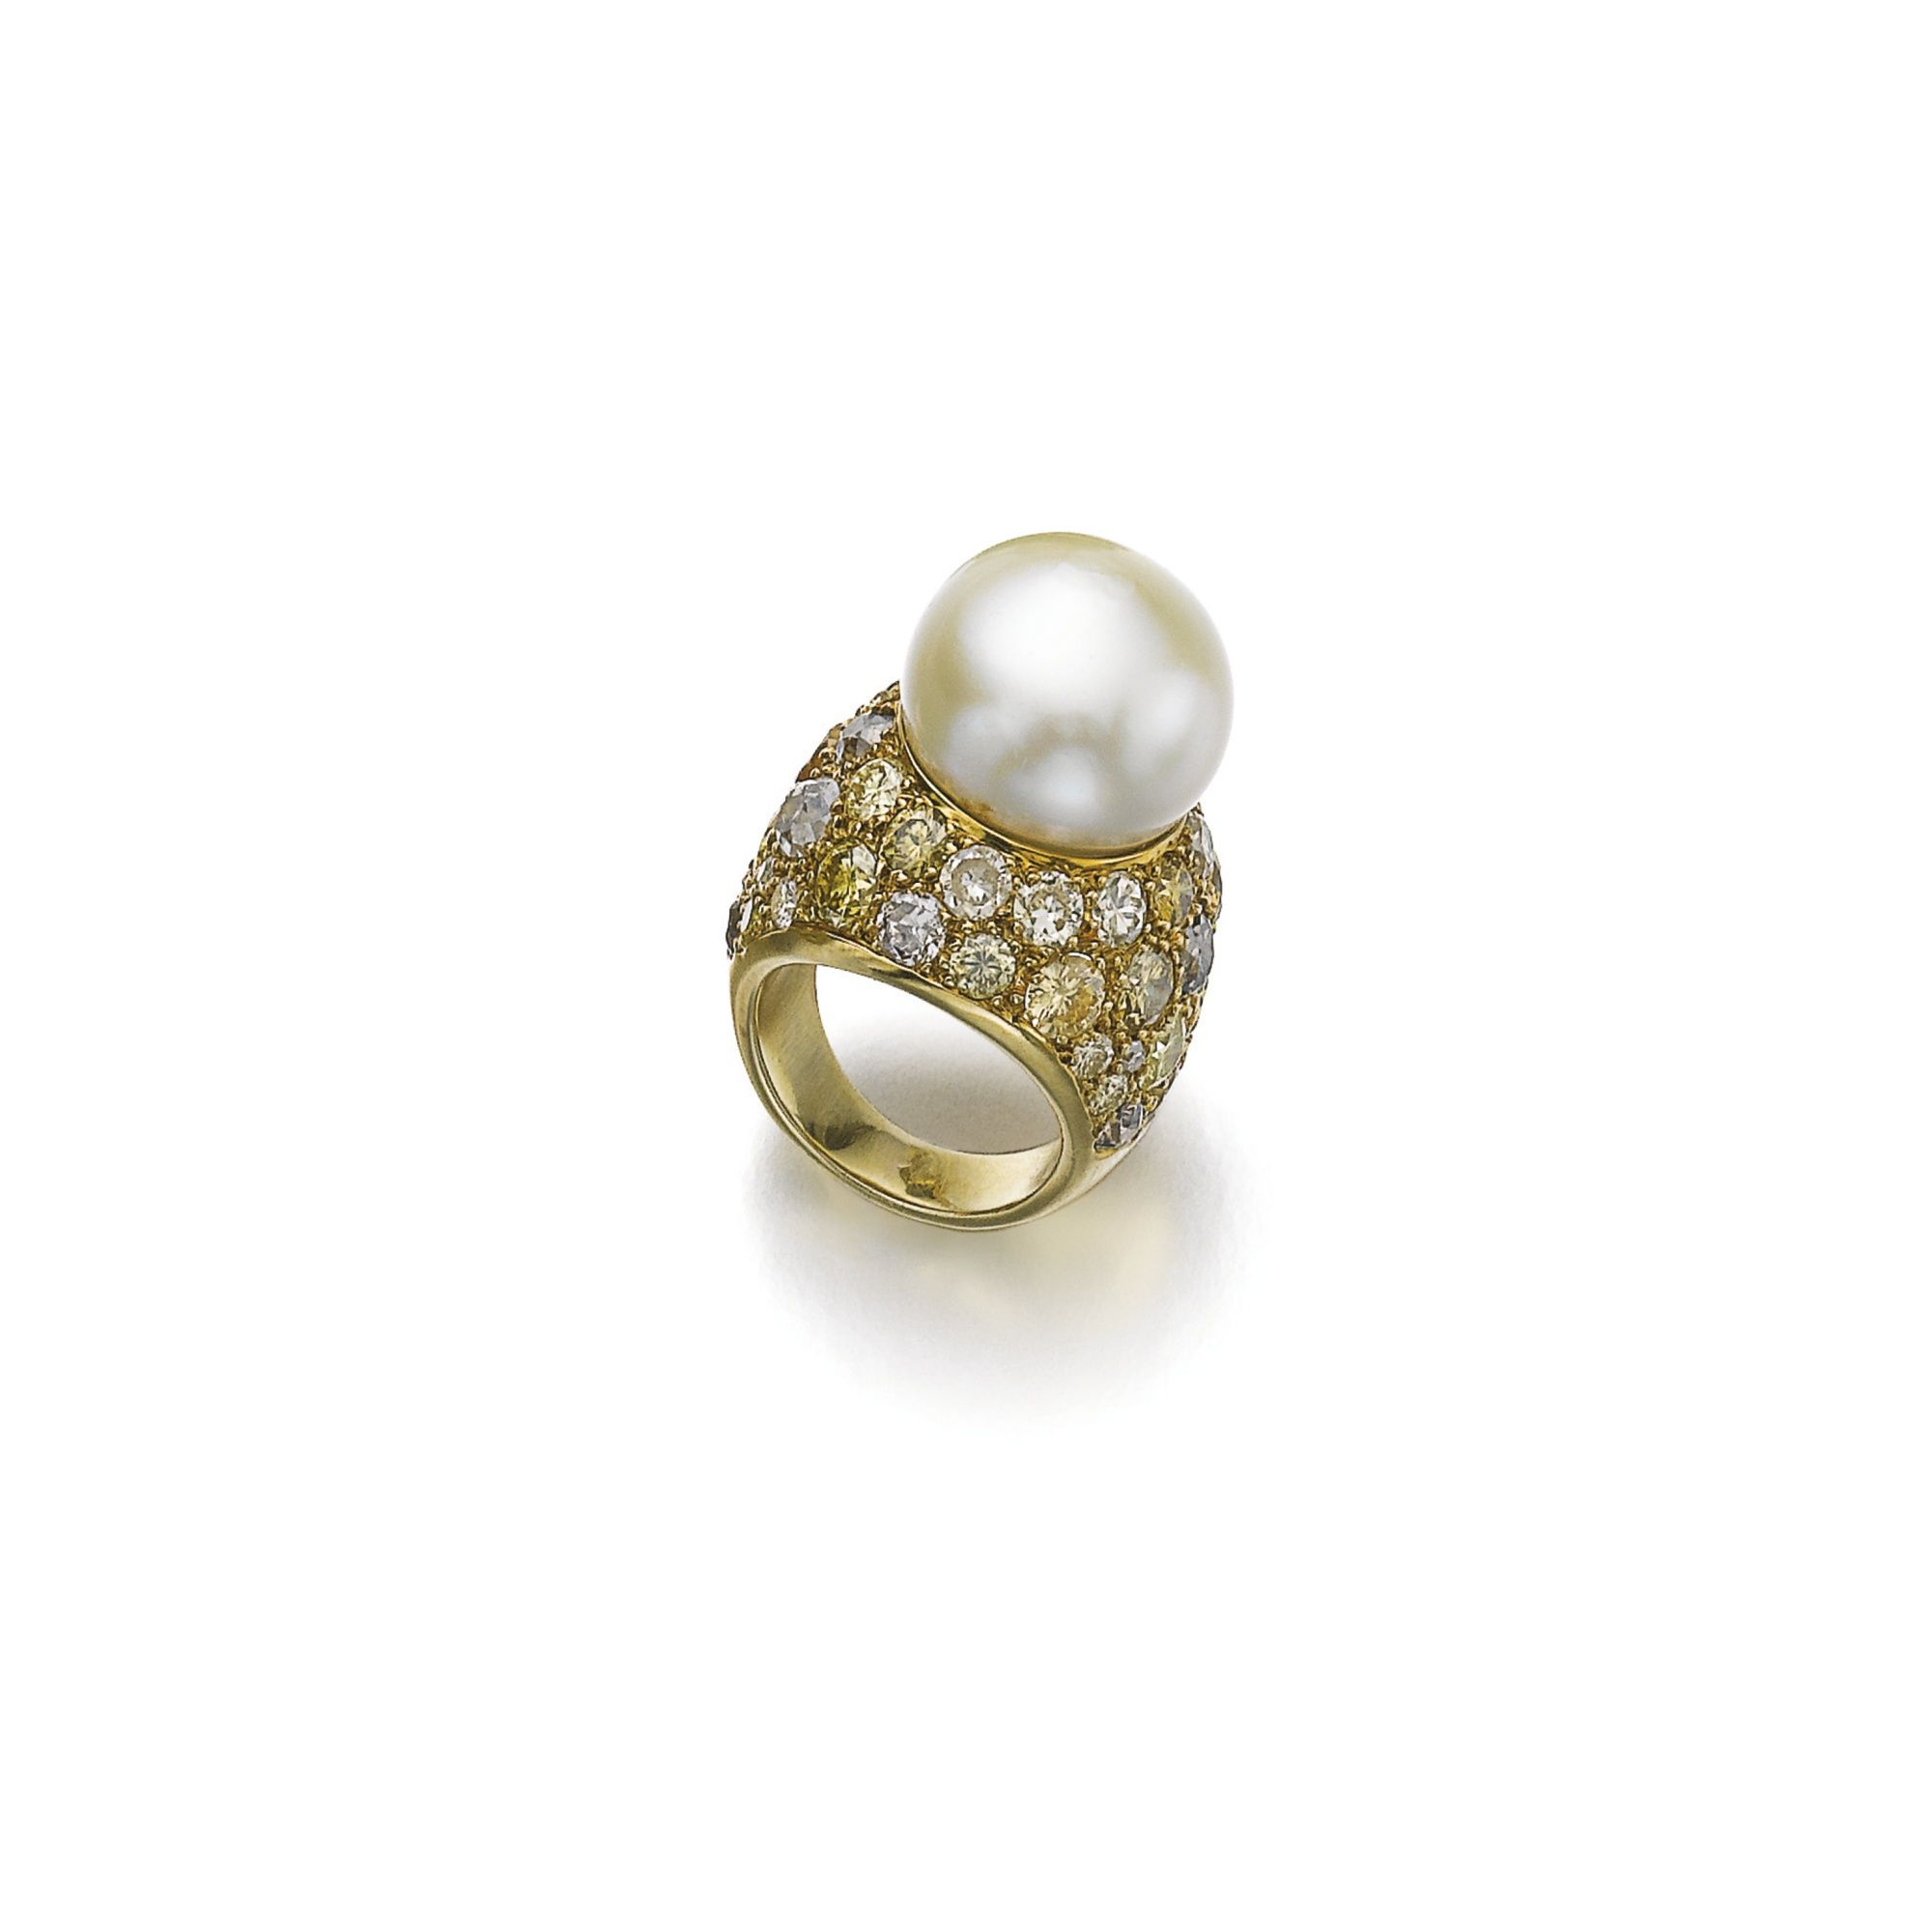 Cultured Pearl And Diamond Ring, Suzanne Belperron, 1964  Lot  Sotheby's